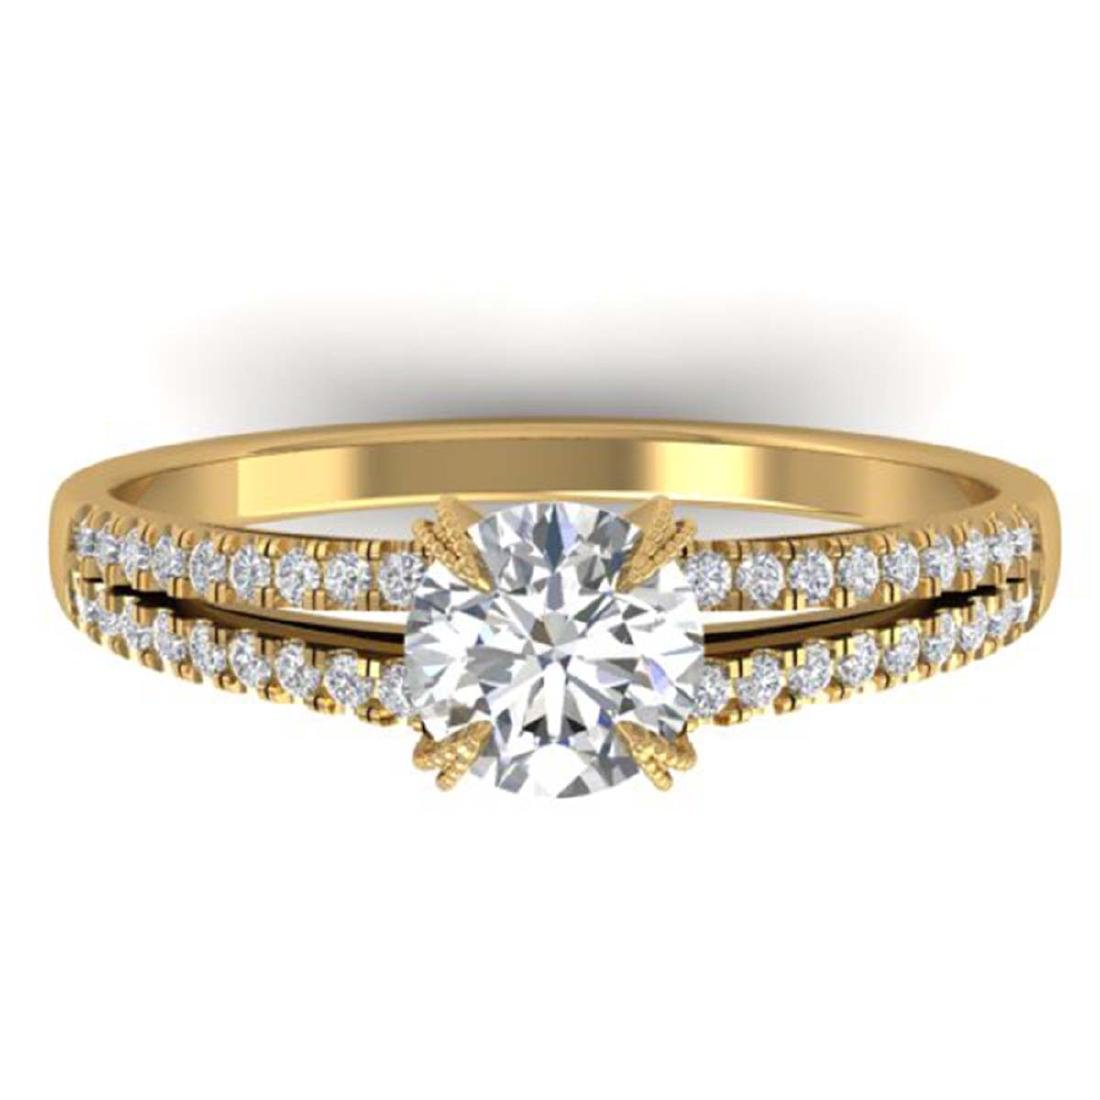 1.11 CTW Certified VS/SI Diamond Solitaire Art Deco